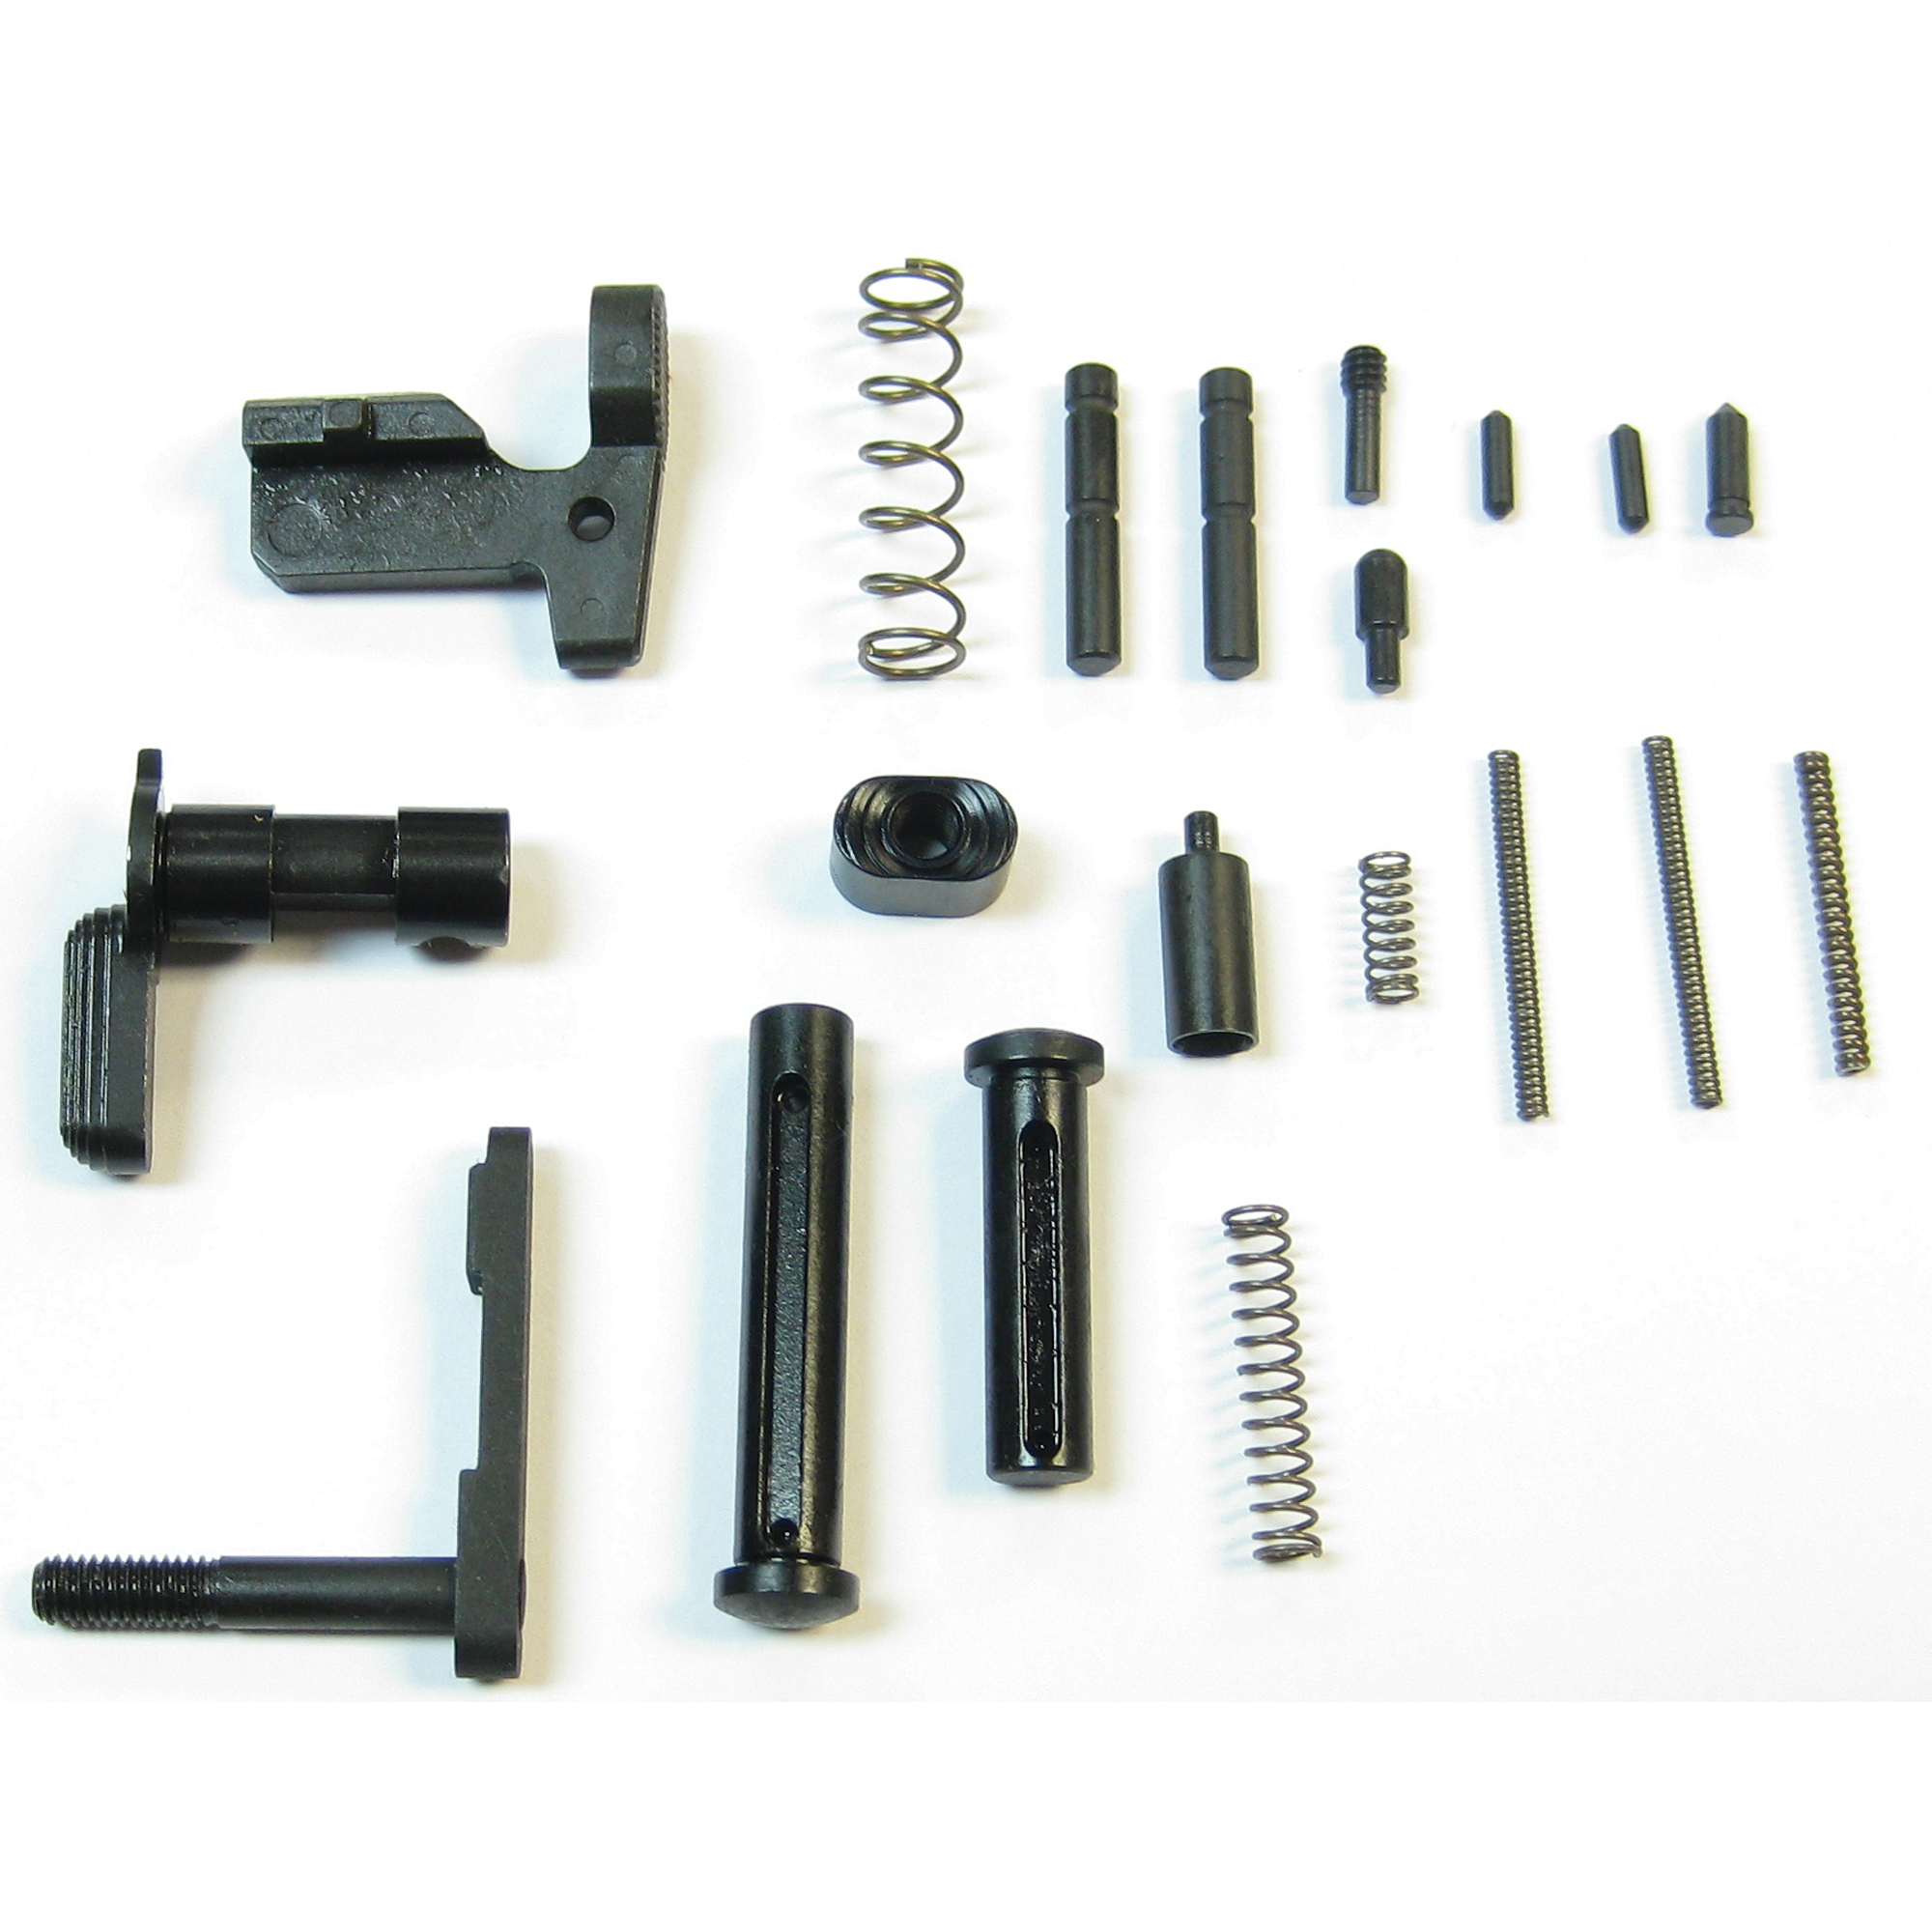 """The Mk3 Gun builders kit includes most of the necessary parts to build your lower group except the commonly upgraded parts. Does not include Fire Control Group"""" and pistol grip. Compatible with CMMG Mk3 Lowers and most LR308 type lowers."""